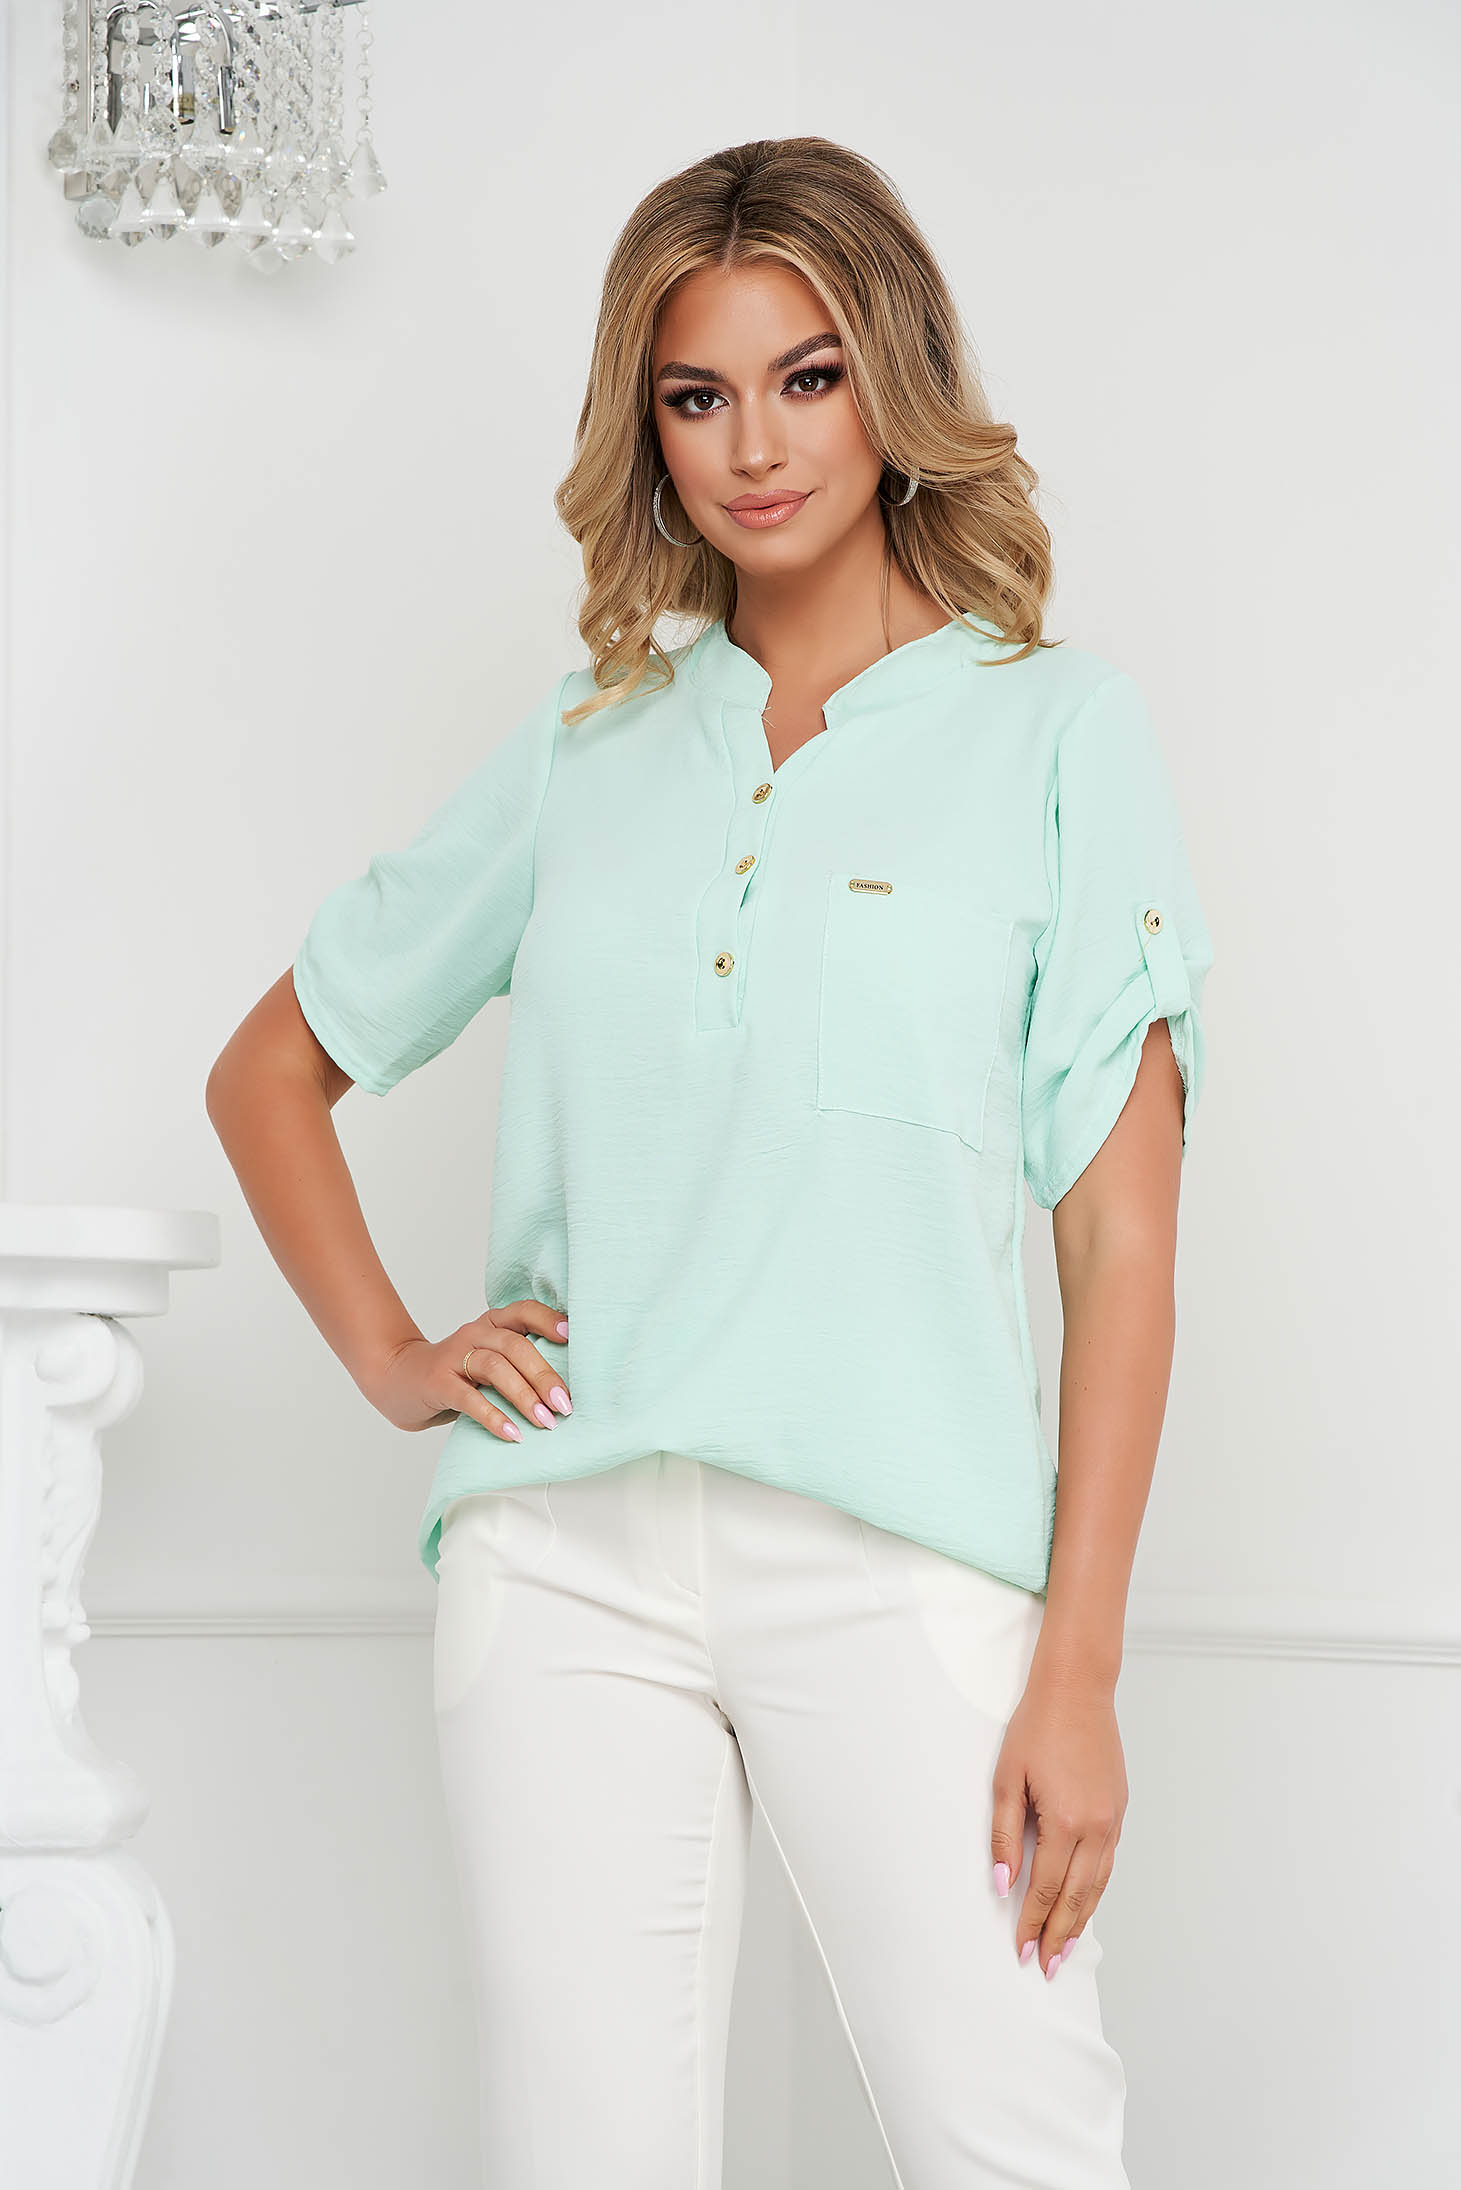 Mint women`s blouse loose fit wrinkled material a front pocket